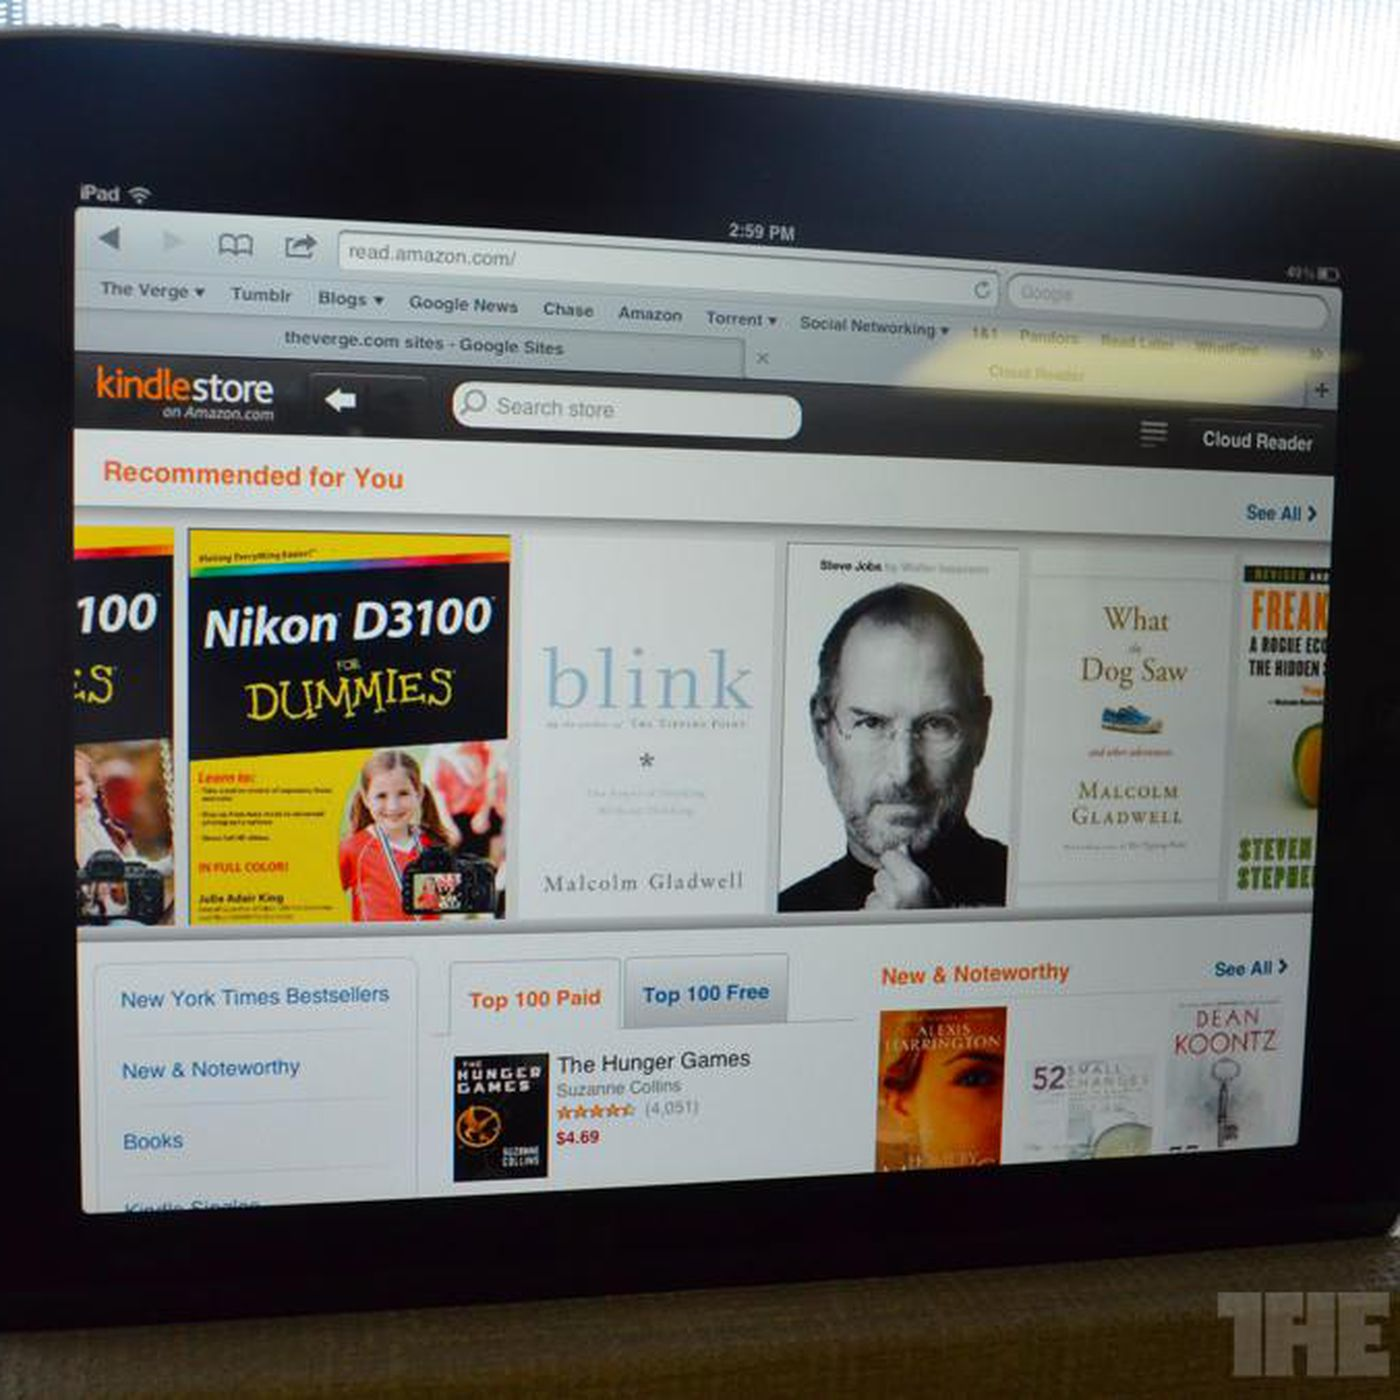 Amazon's Kindle Store and Cloud Reader optimized for iPad use - The